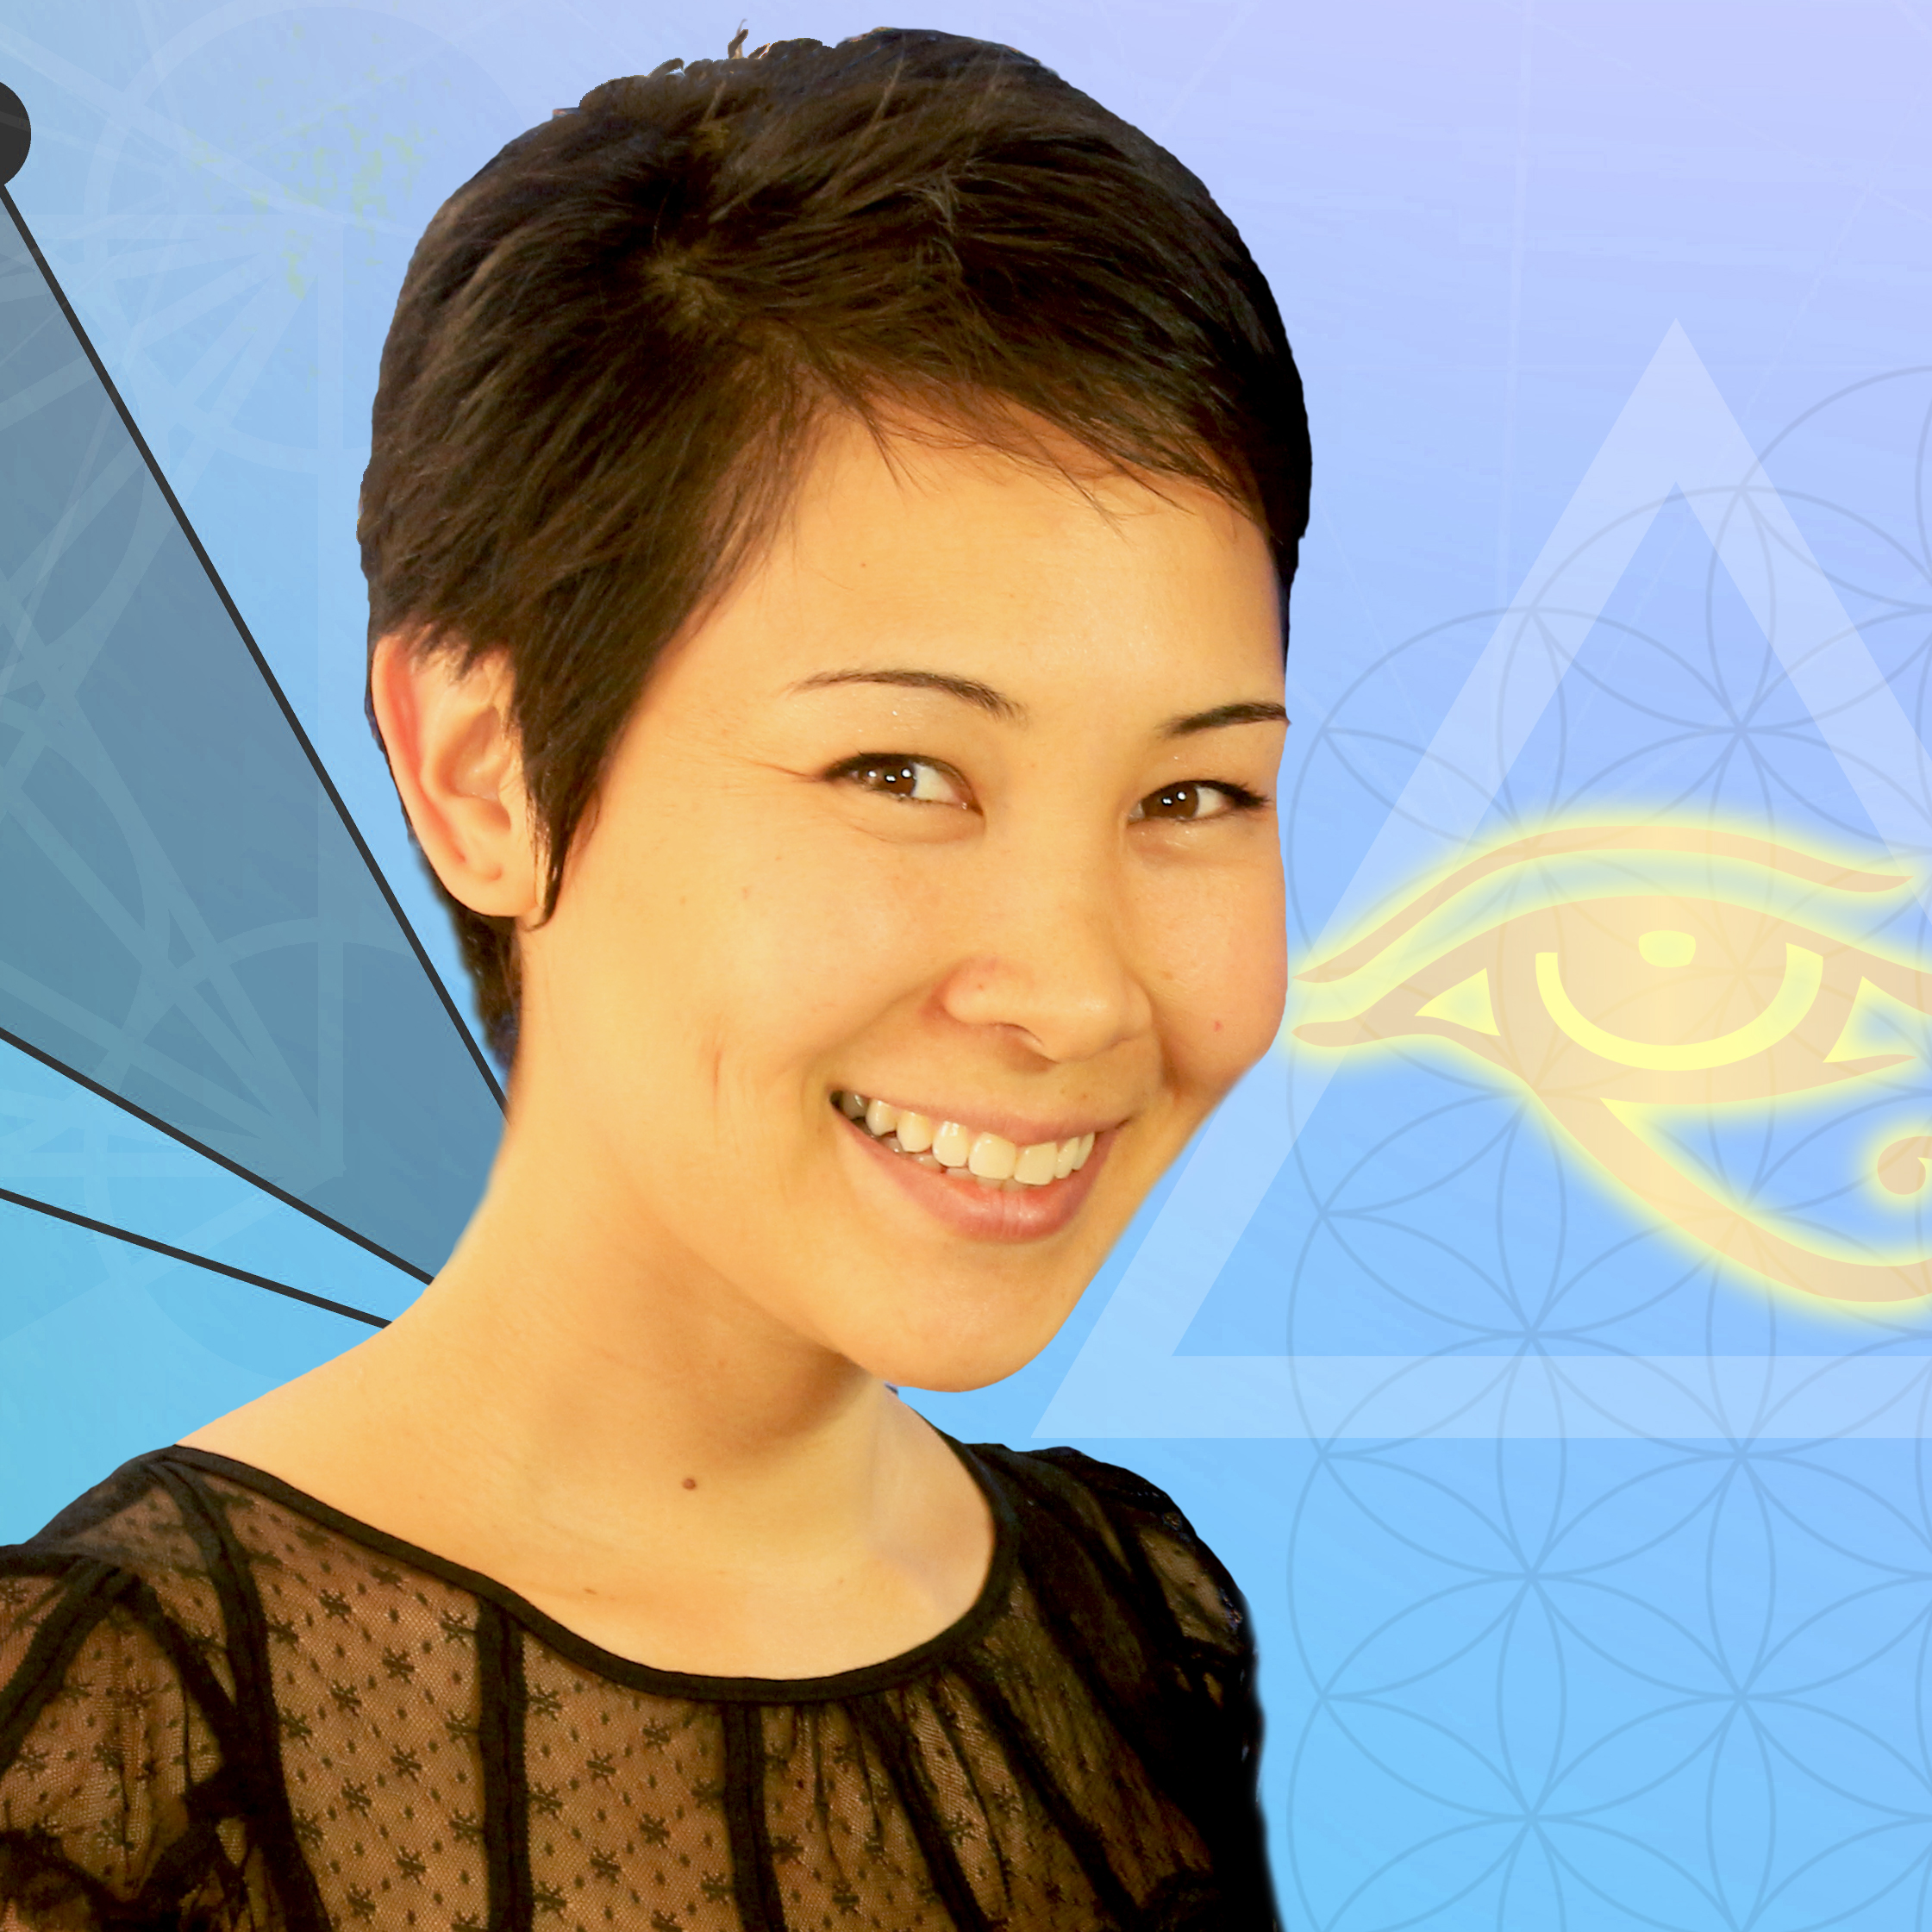 Jadelin Kuencer - Vice PresidentAn Author, Creator and Mentor of various forms of metaphysical sciences and spiritual practices.Jadelin has compiled many comprehend-able and easily taught spiritual lessons in the forms of books,courses and videos. She is a producer of the Oahu Holistic and Metaphysical(OHM) Expo.